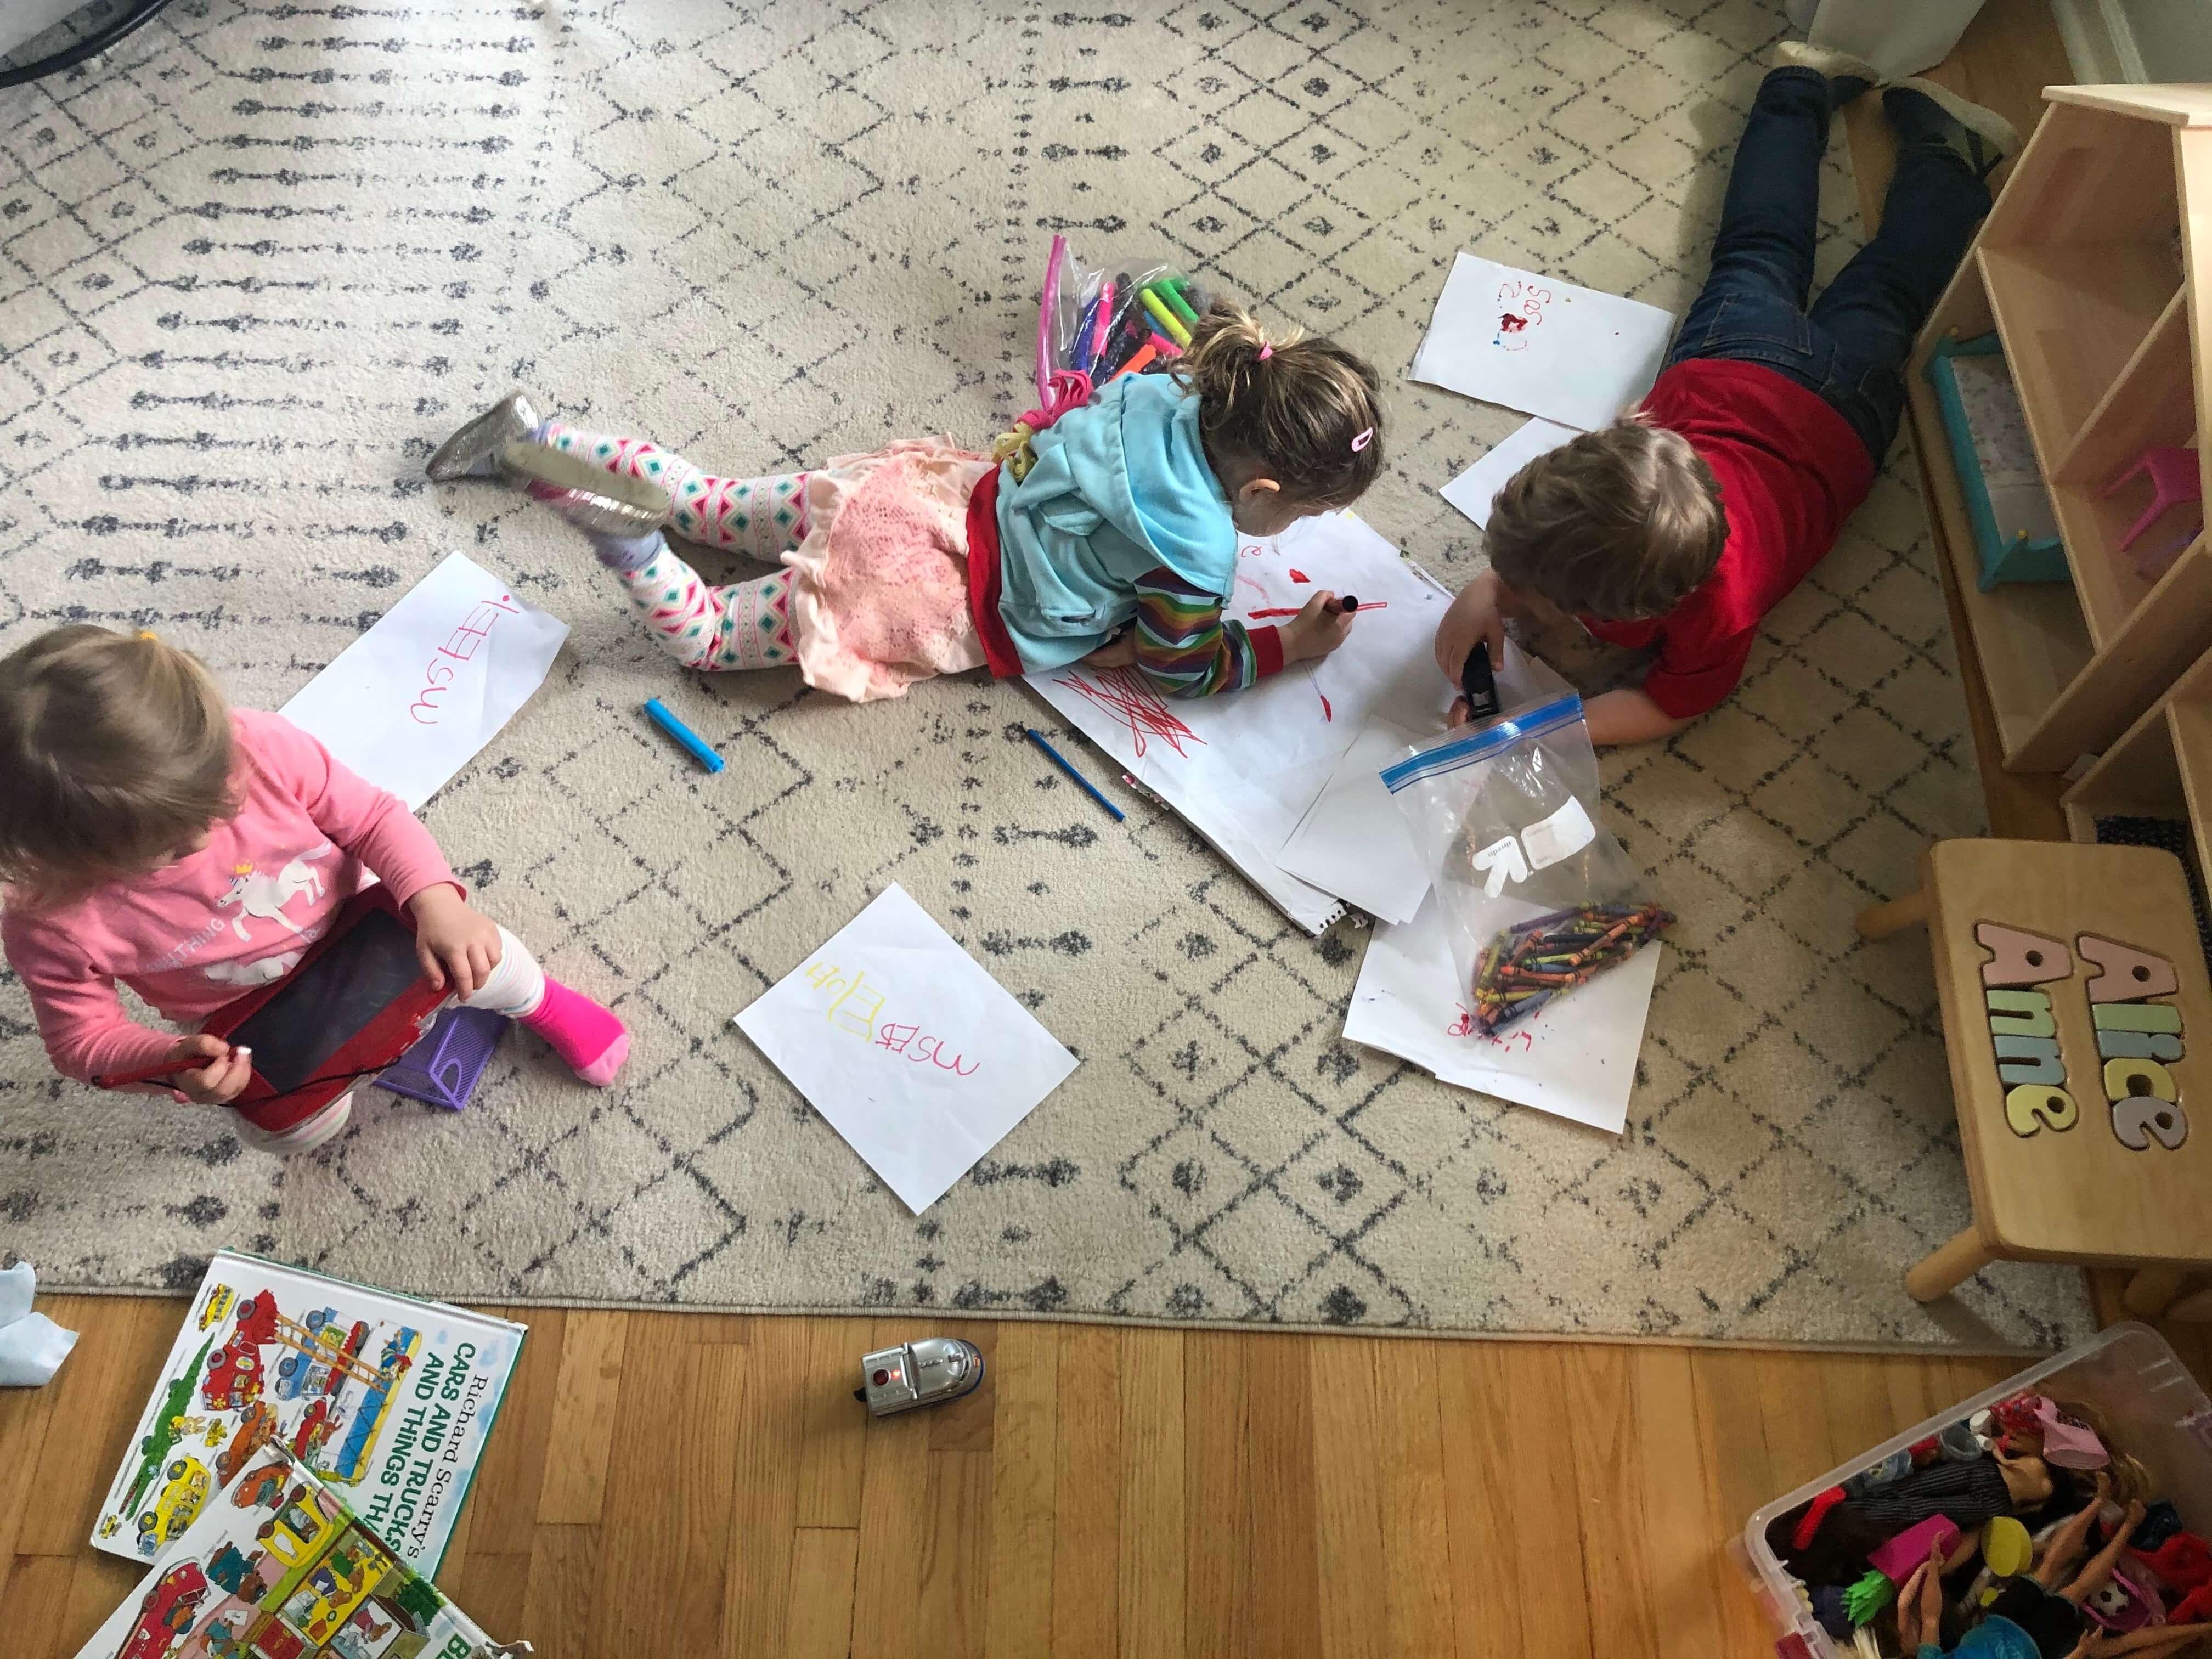 Three kids doing projects on the floor